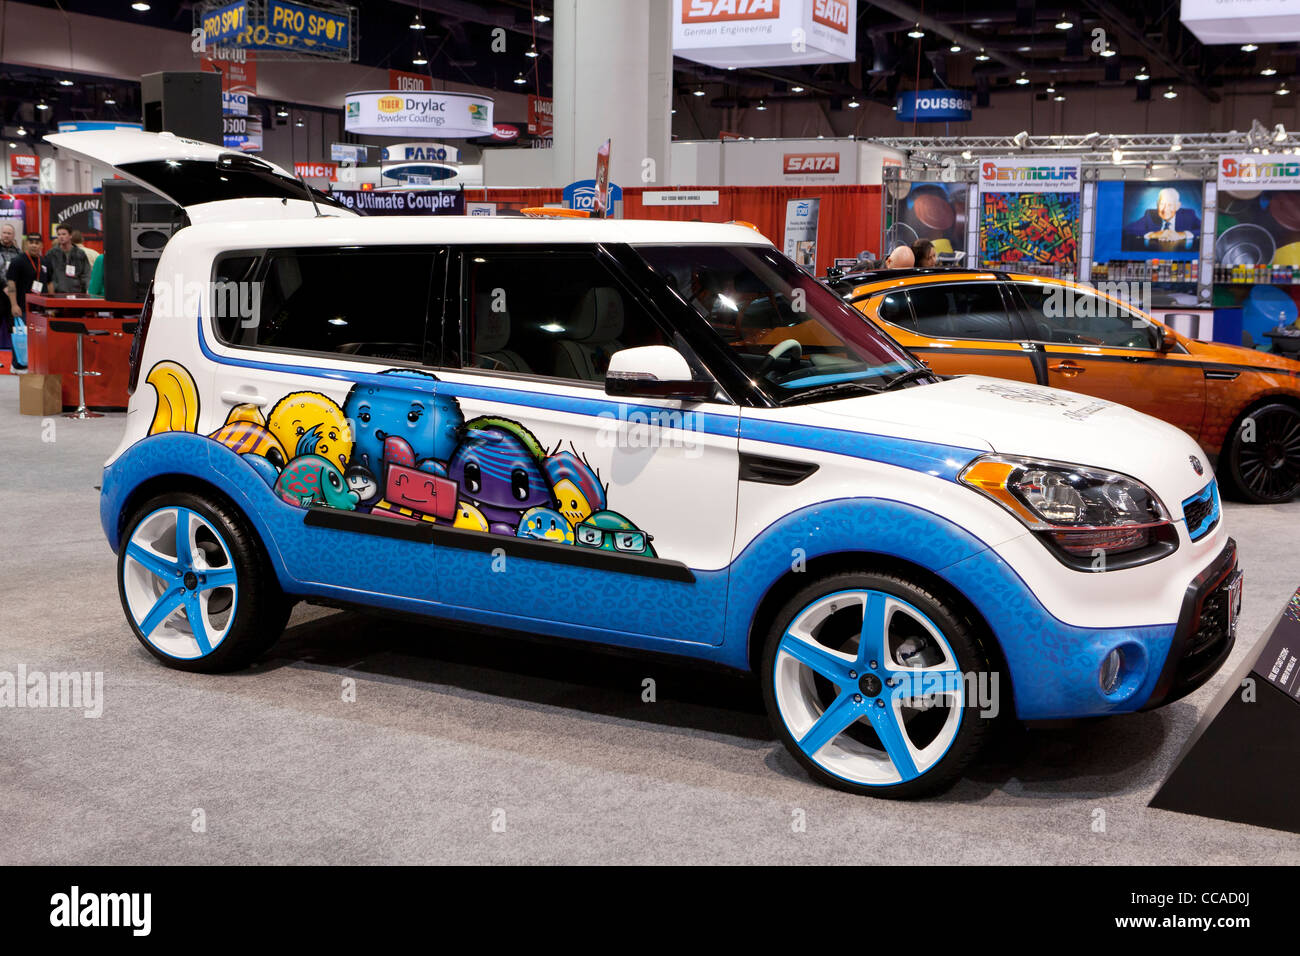 """Trou en un"" - Kia Soul Kia Concept car inspiré par Michelle Wie Photo Stock"